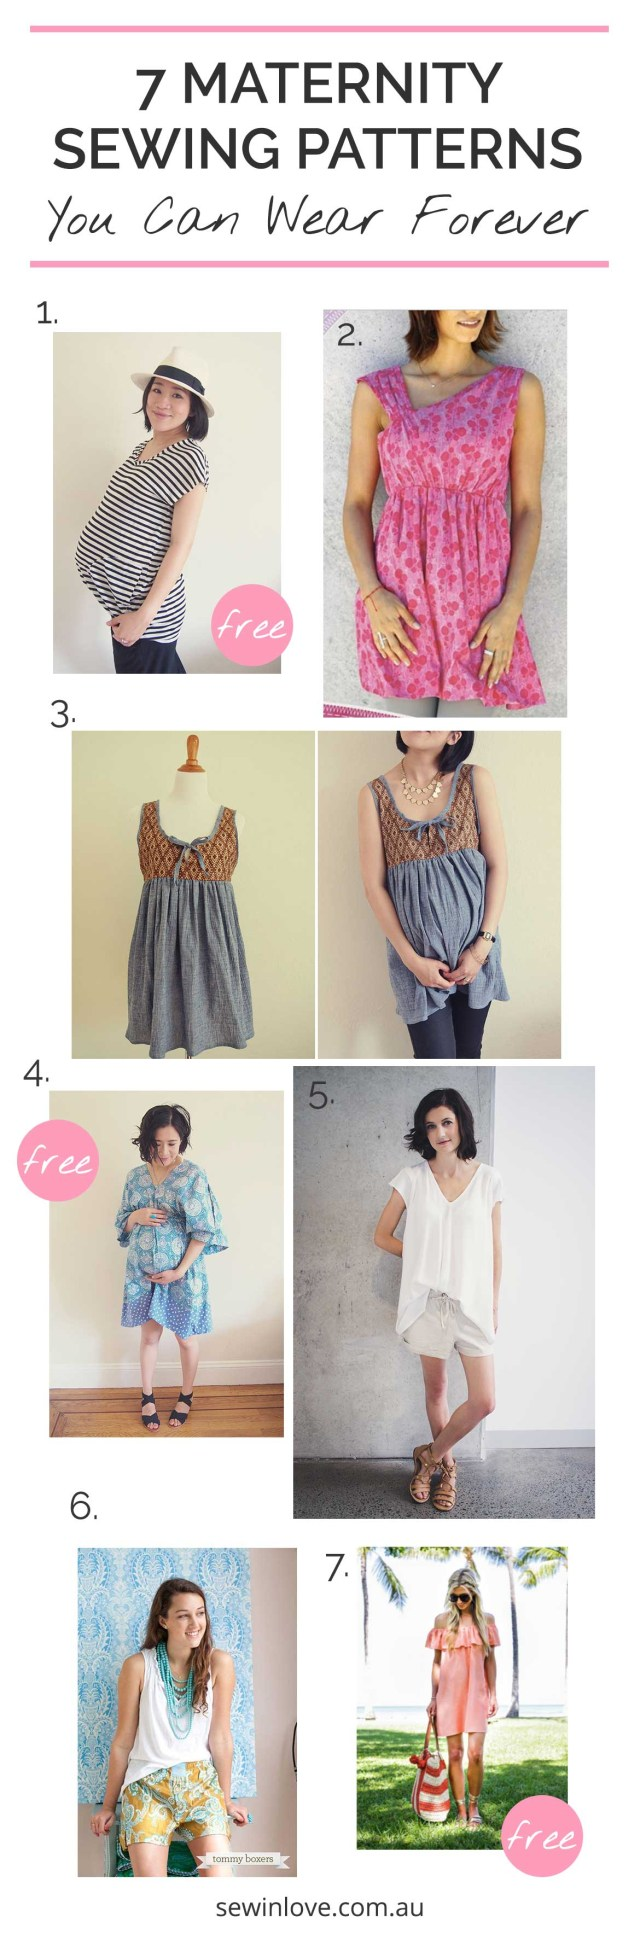 Maternity Sewing Patterns 7 Maternity Sewing Patterns You Can Wear Forever 3 Are Free Sew